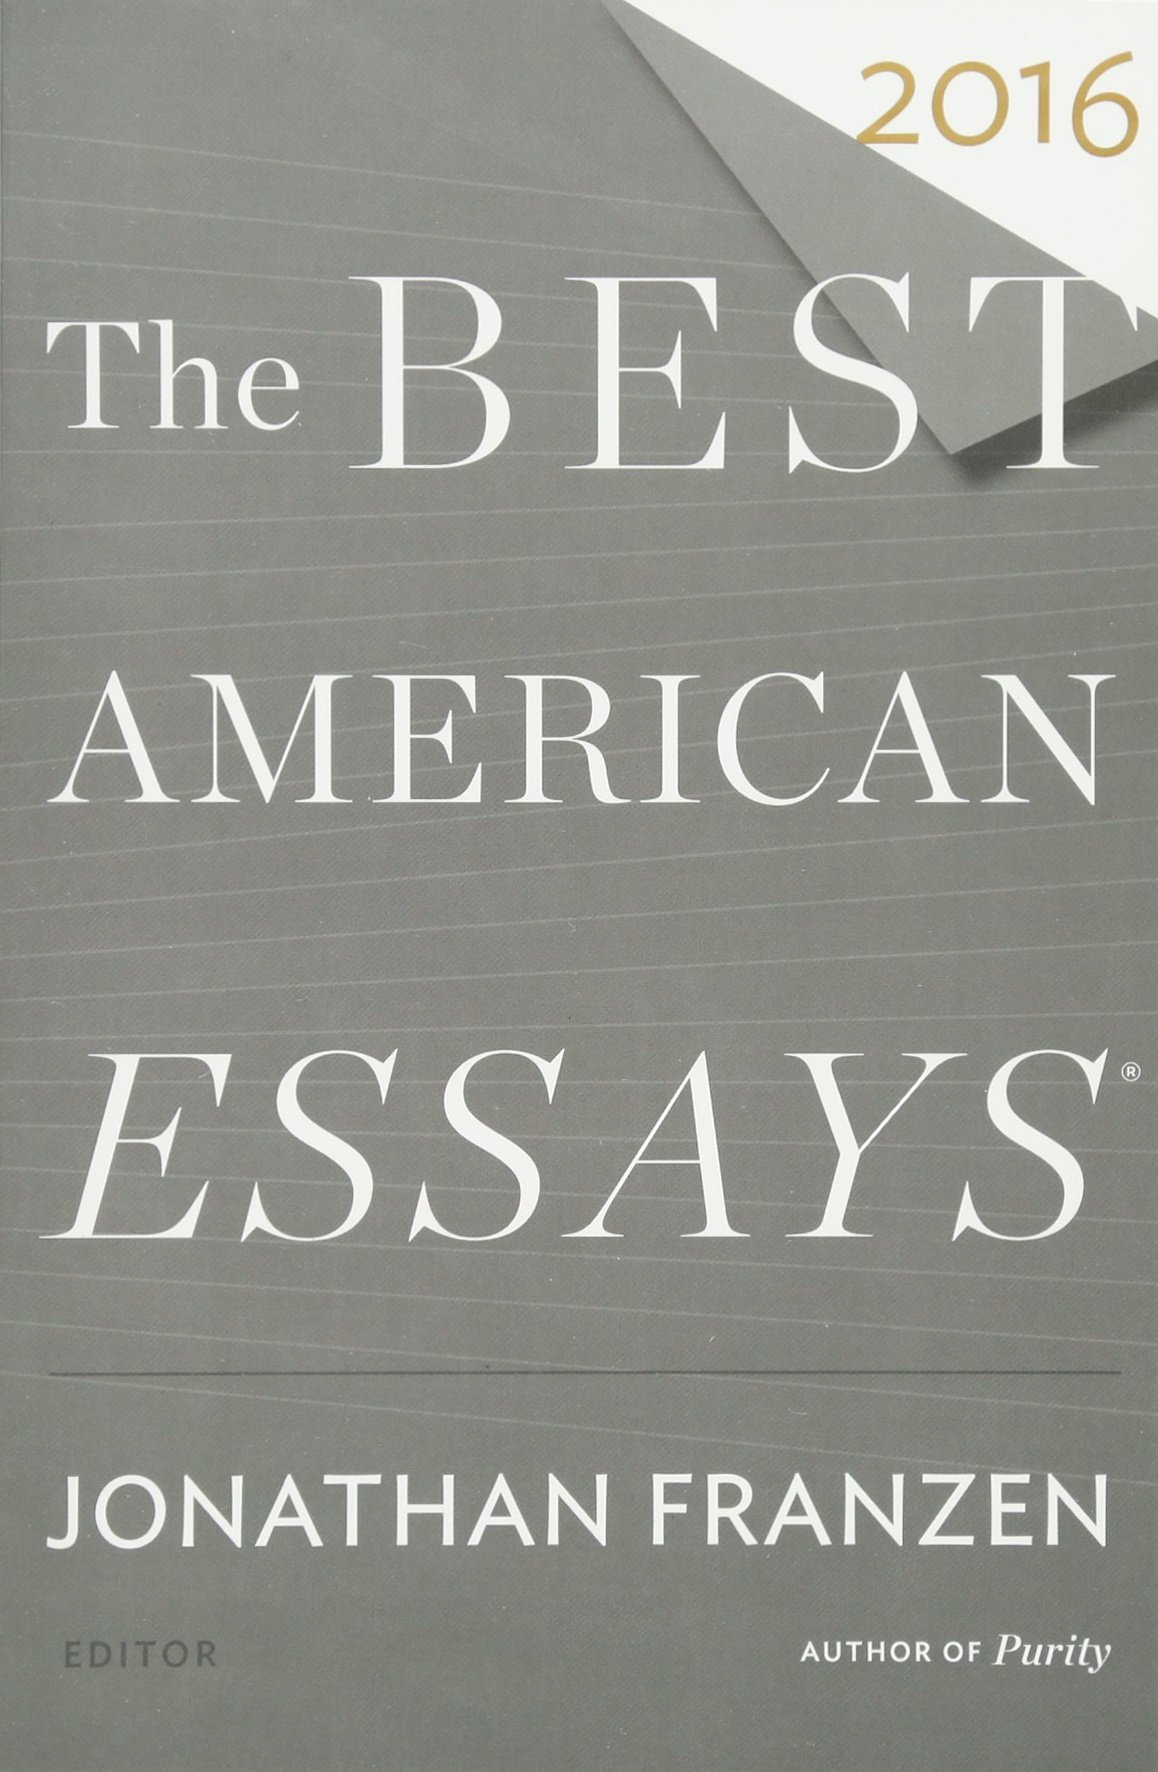 005 The Best American Essays Essay Example Wonderful 2018 Pdf 2017 Table Of Contents 2015 Free Full